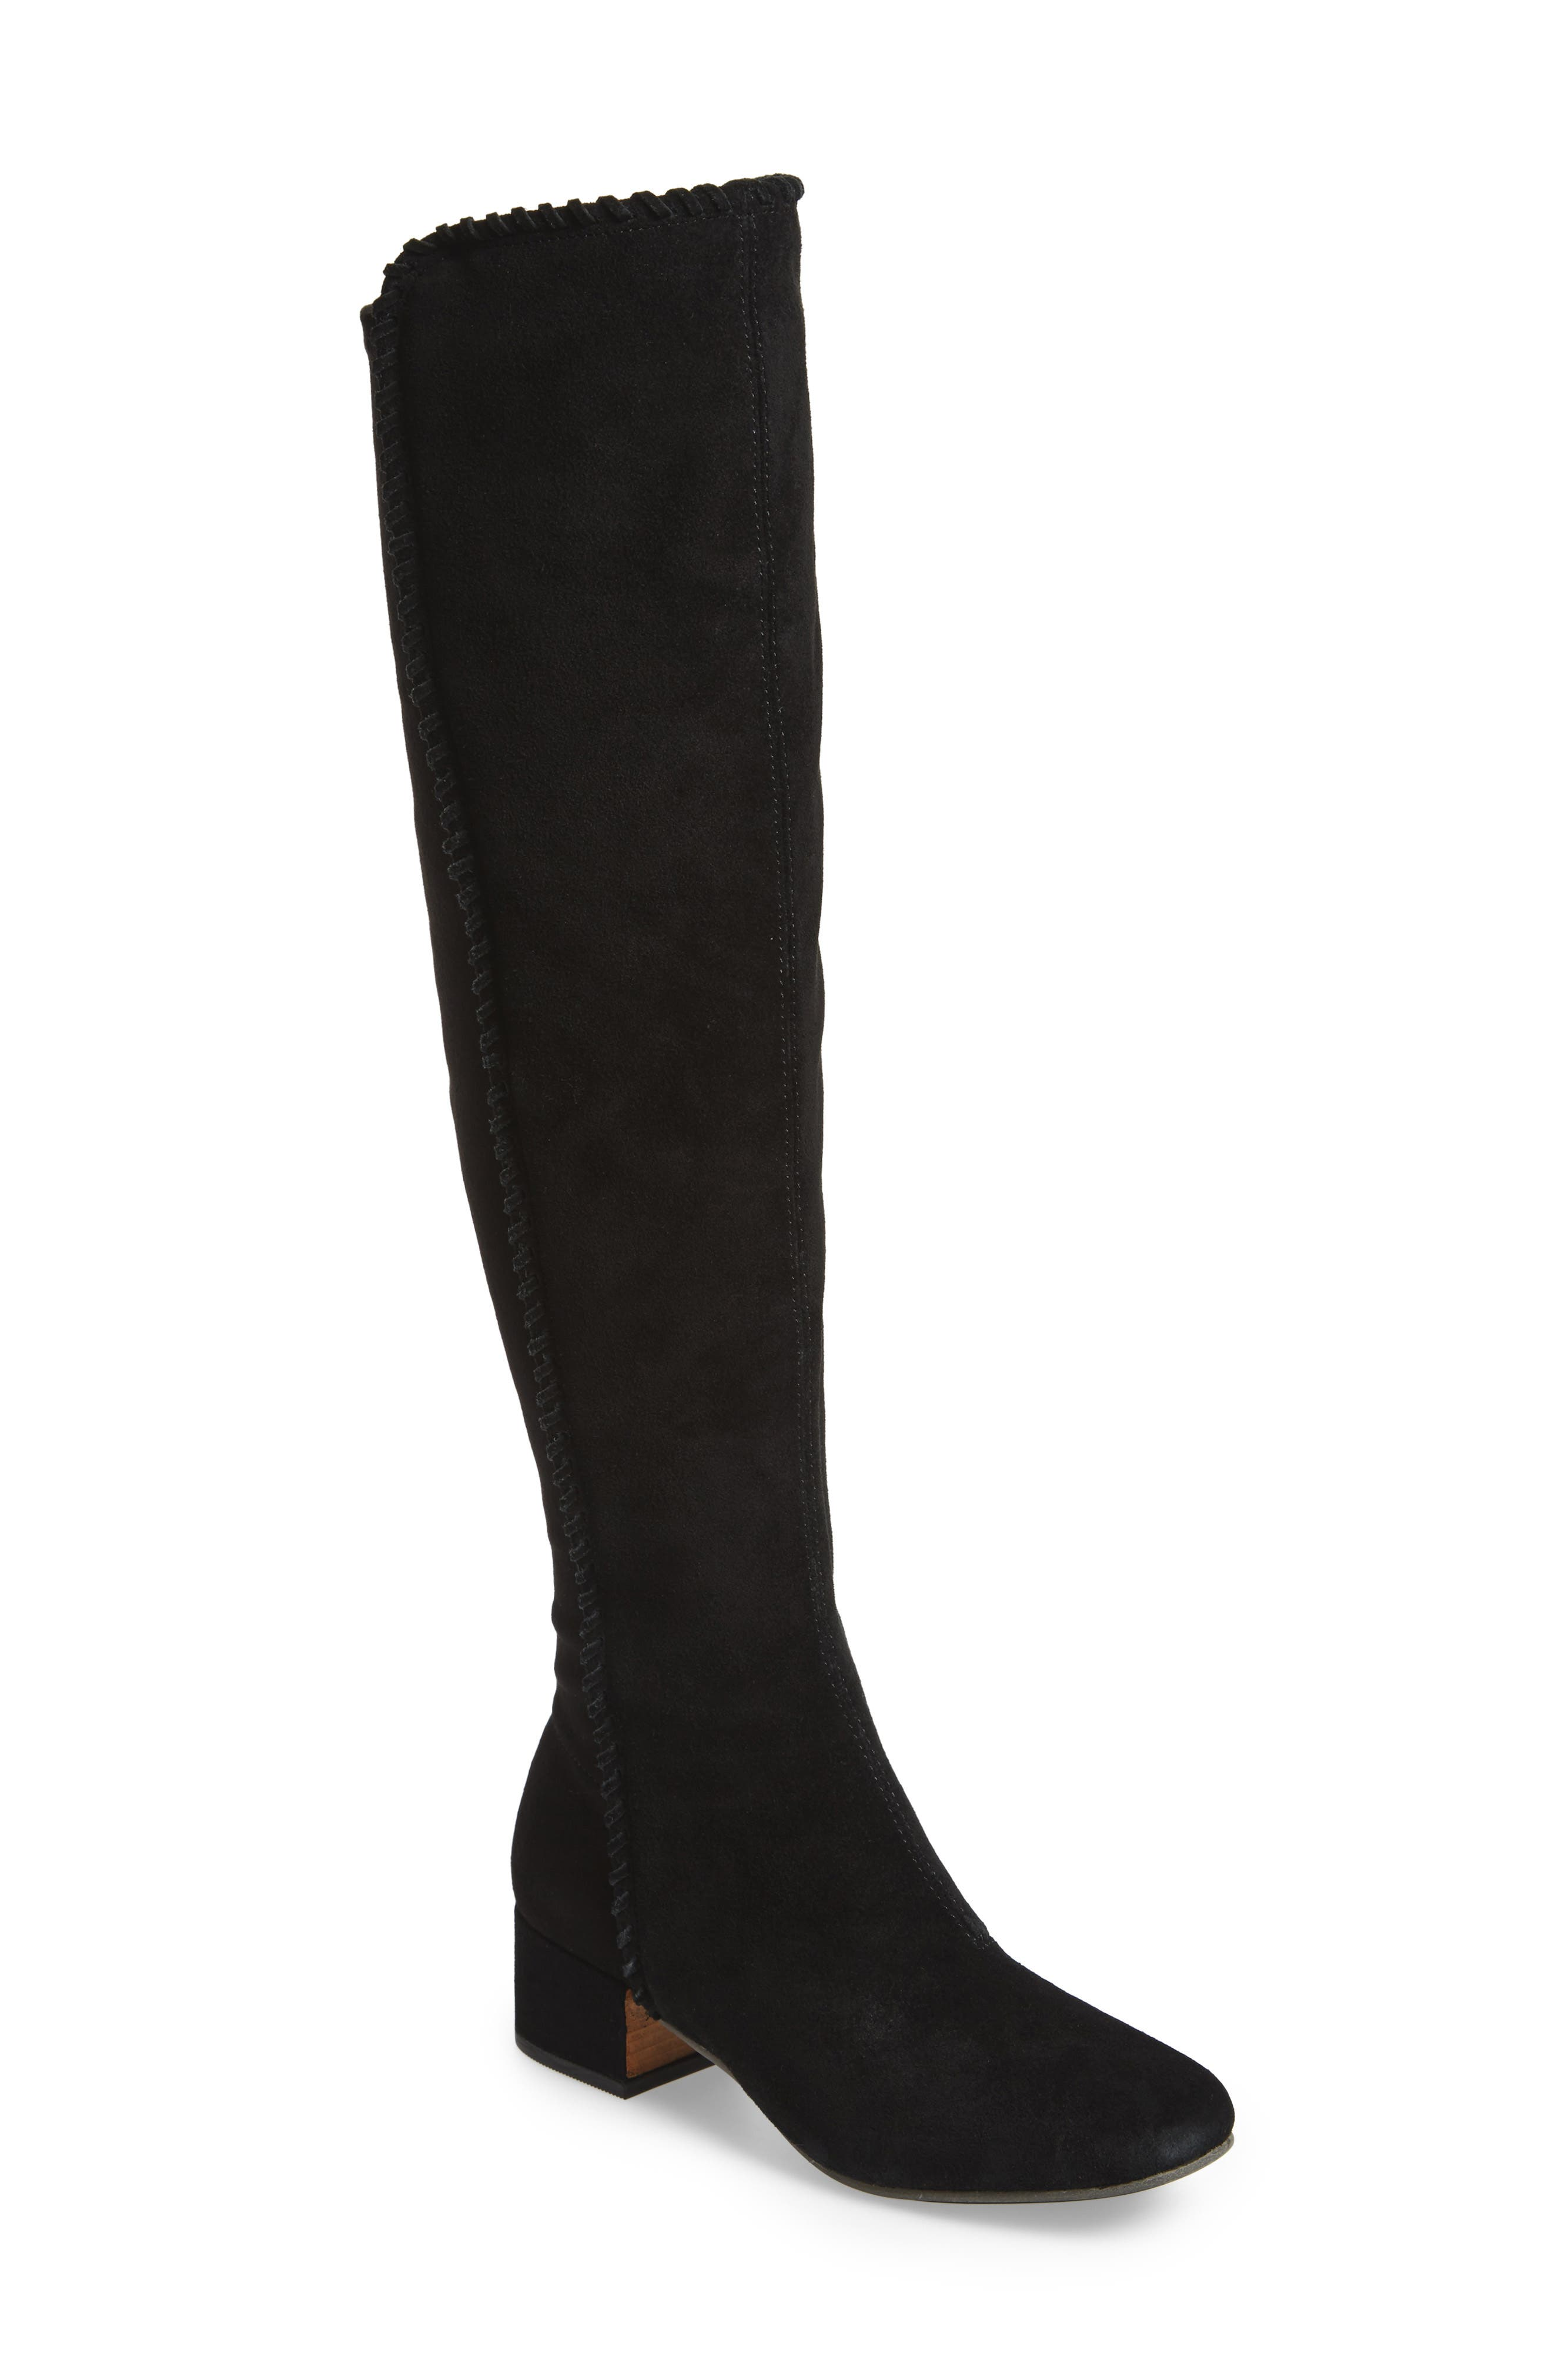 Emery Over the Knee Boot,                         Main,                         color, 001